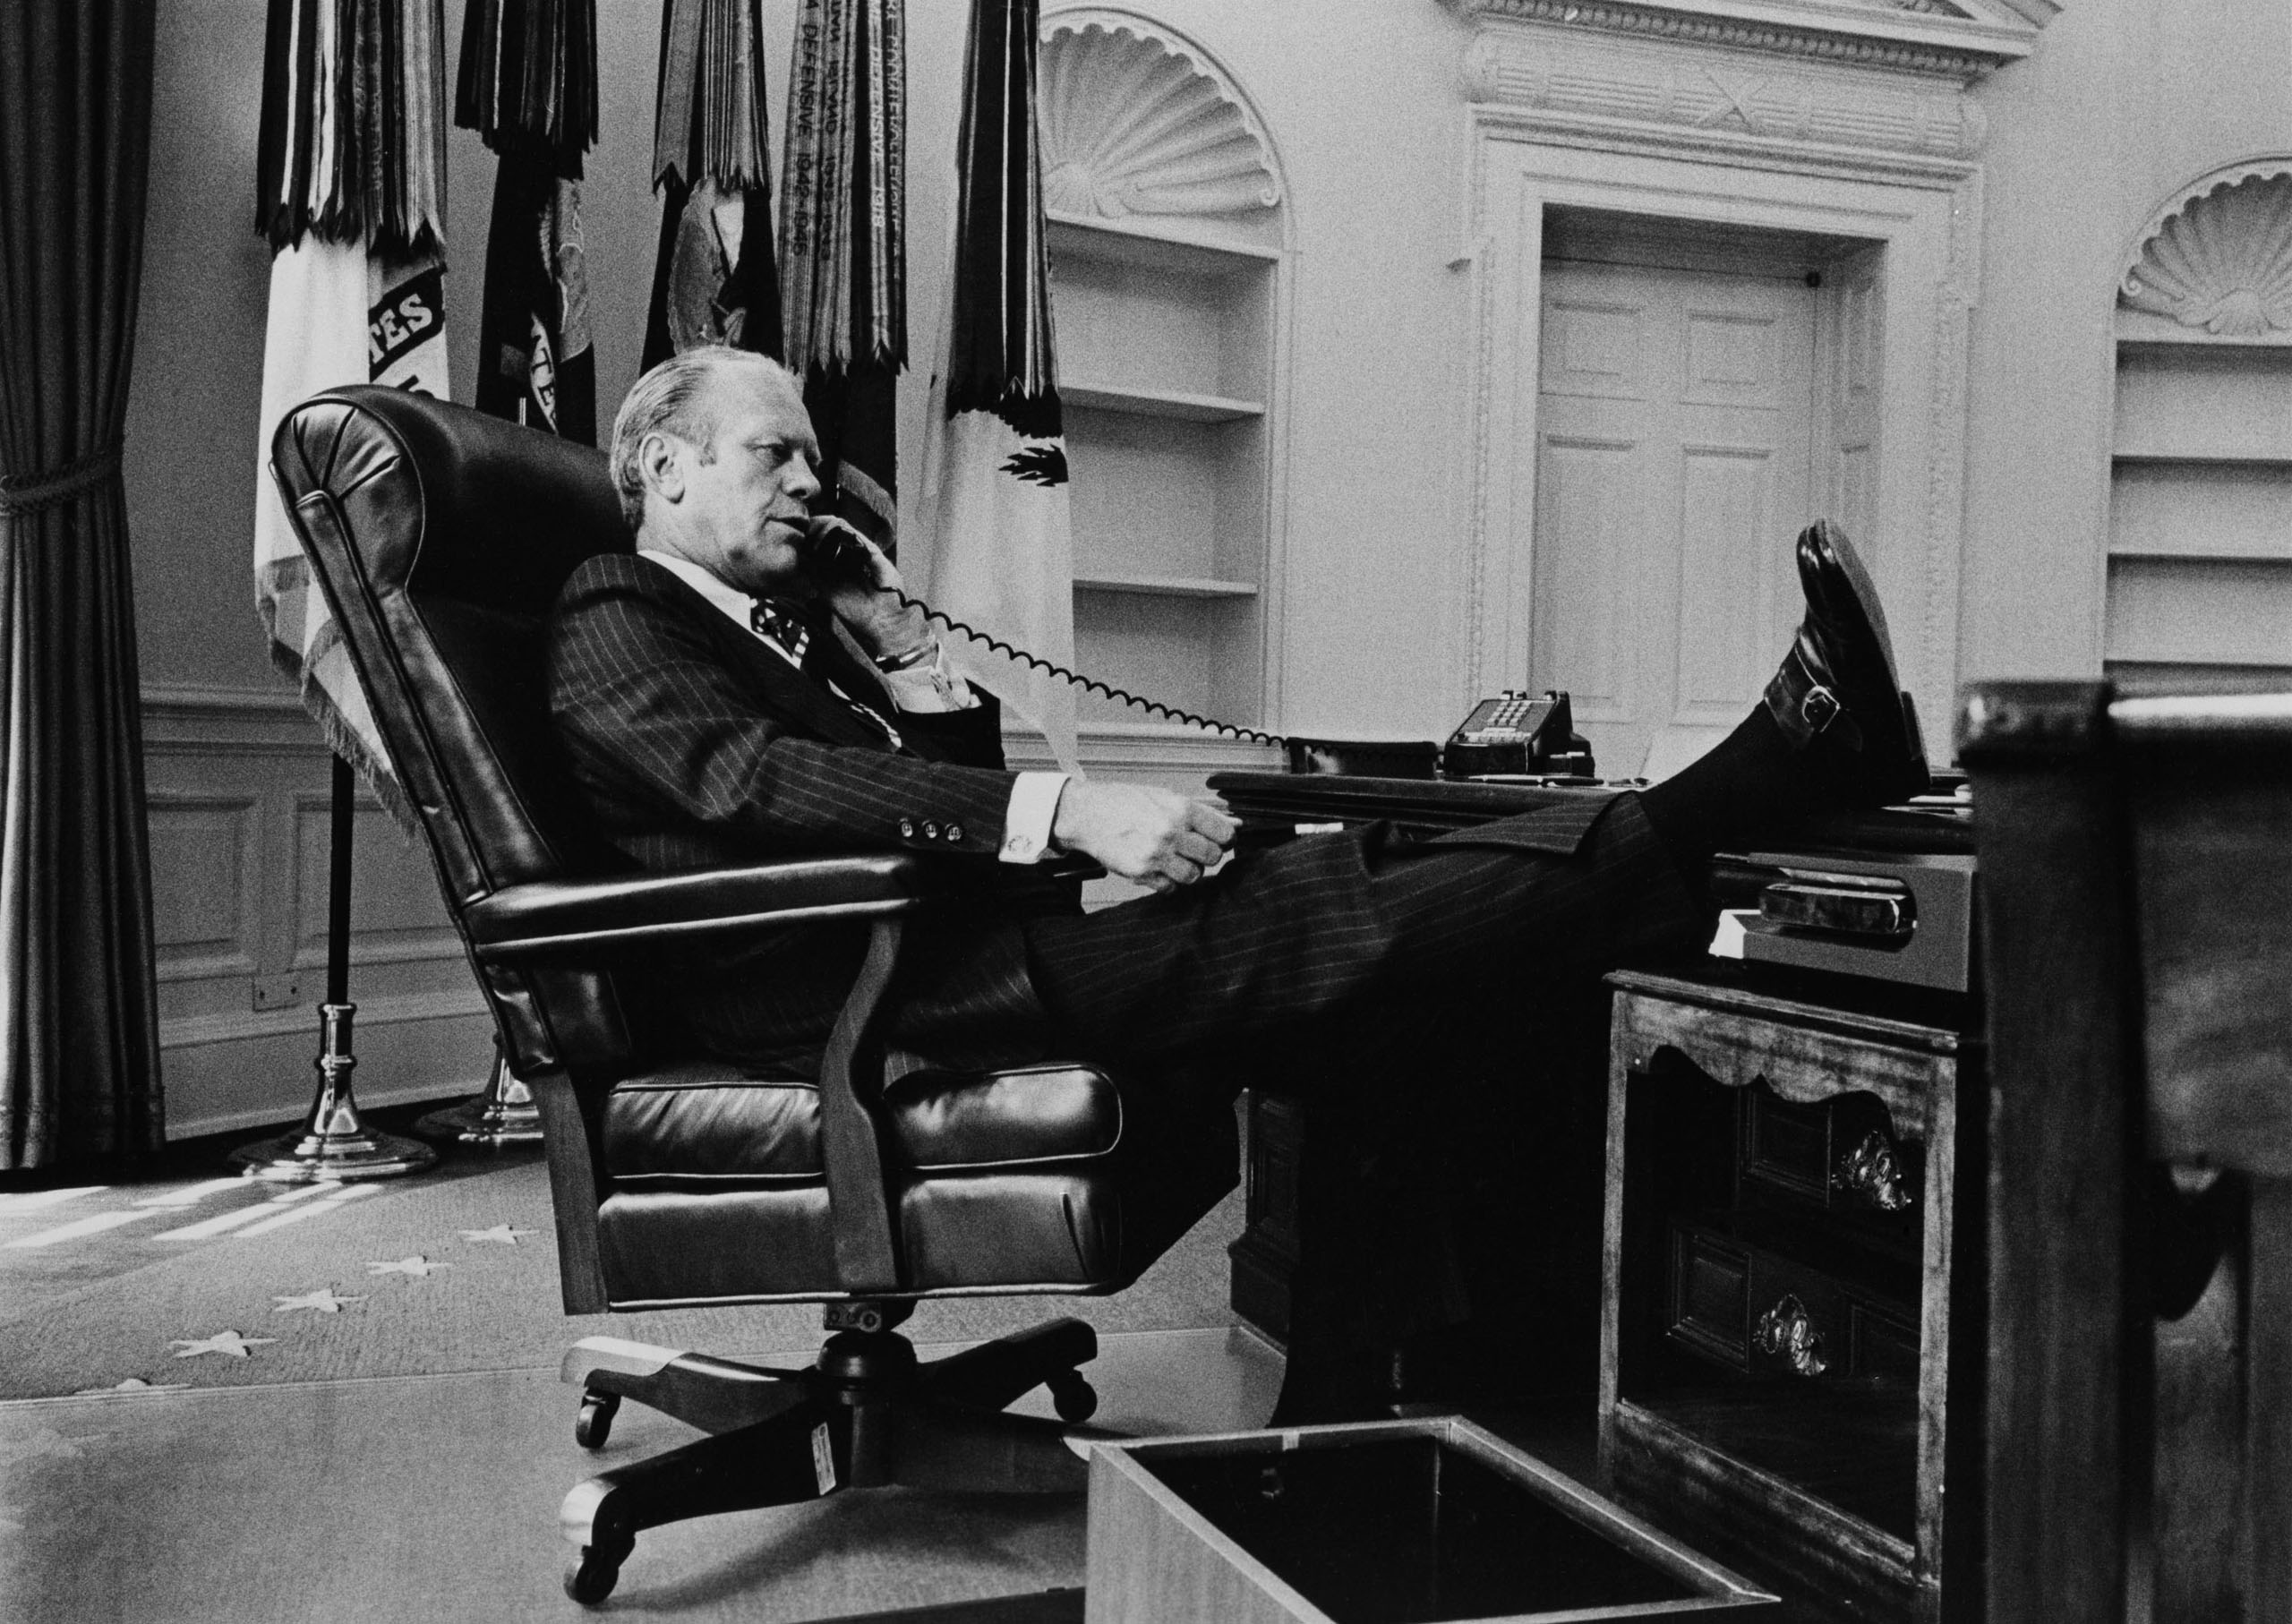 U.S. President Gerald R. Ford takes a call at his desk in the Oval Office on August 11, 1974 in Washington, D.C. The bookshelves are empty due to ex-President Richard M. Nixon's staff packing up two days prior. Ford stepped into office as president on August 9th after the resignation of Nixon.